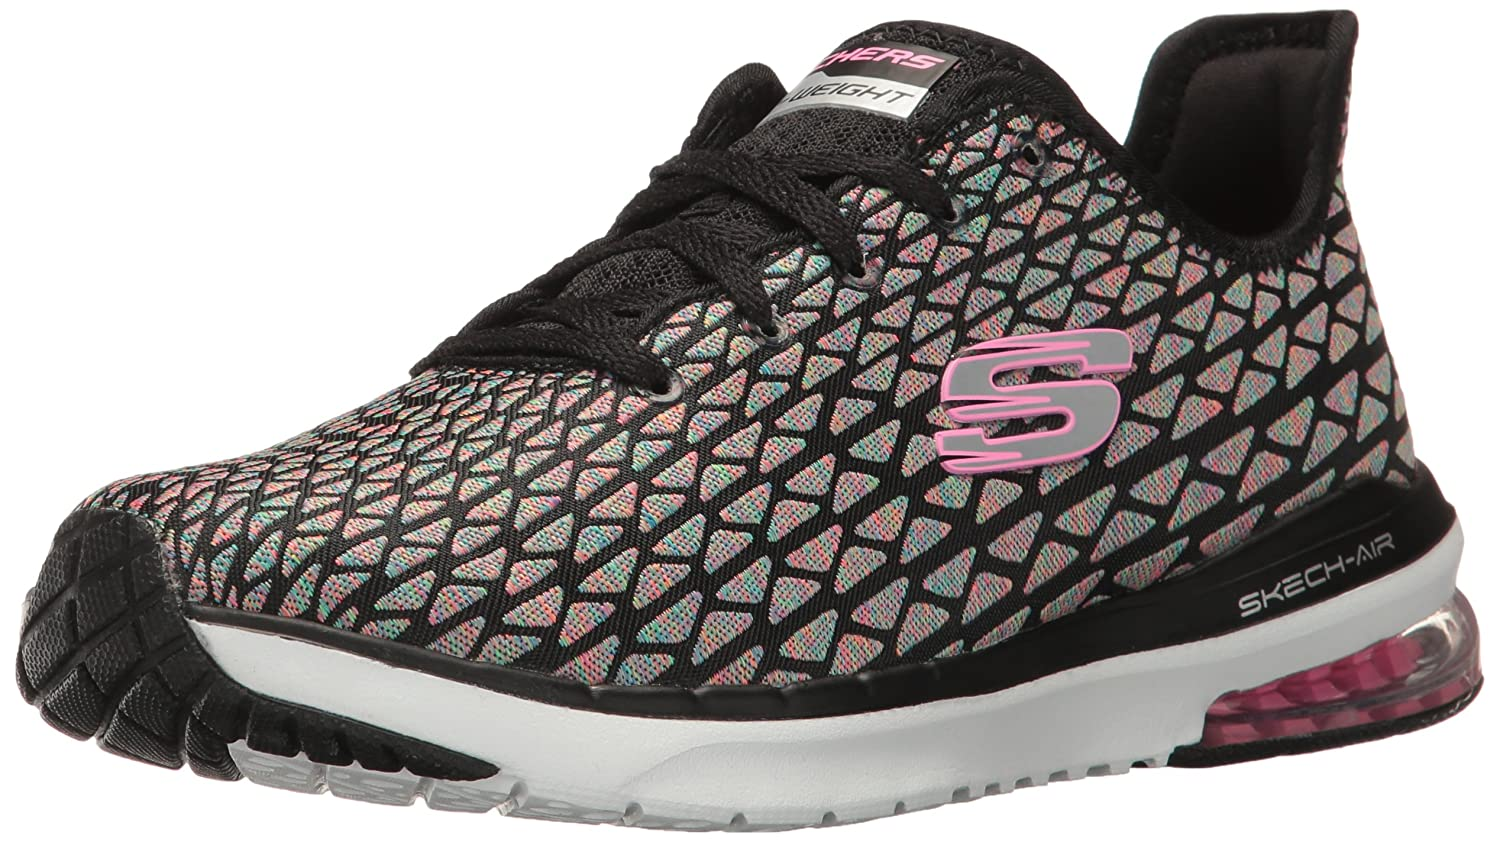 Skechers Sport Women's Skech Air Infinity Free Falli Fashion Sneaker B01N3YP8GZ 6 B(M) US|Black/Multi